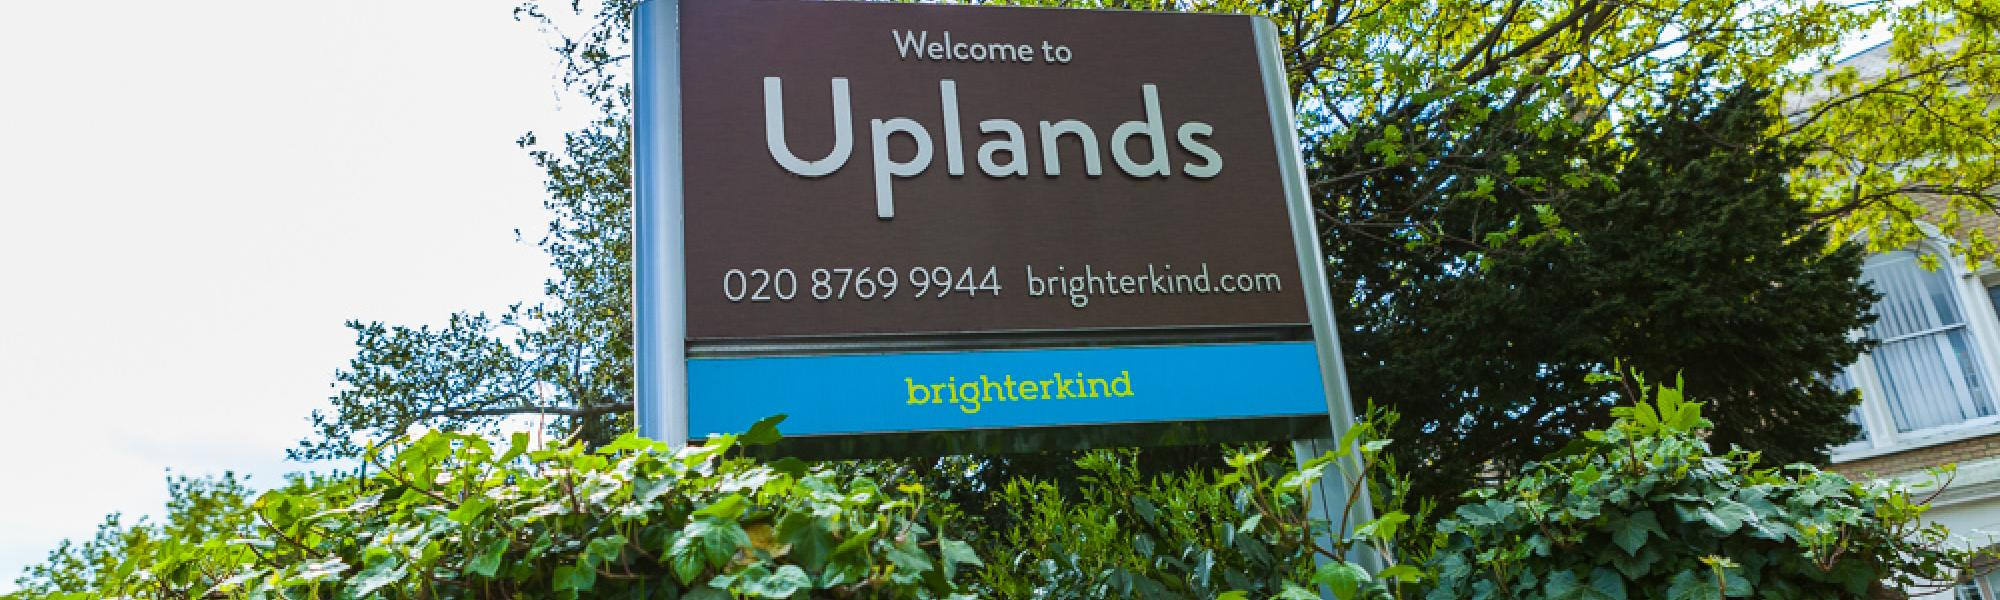 brighterkind Uplands Care Home in Streatham